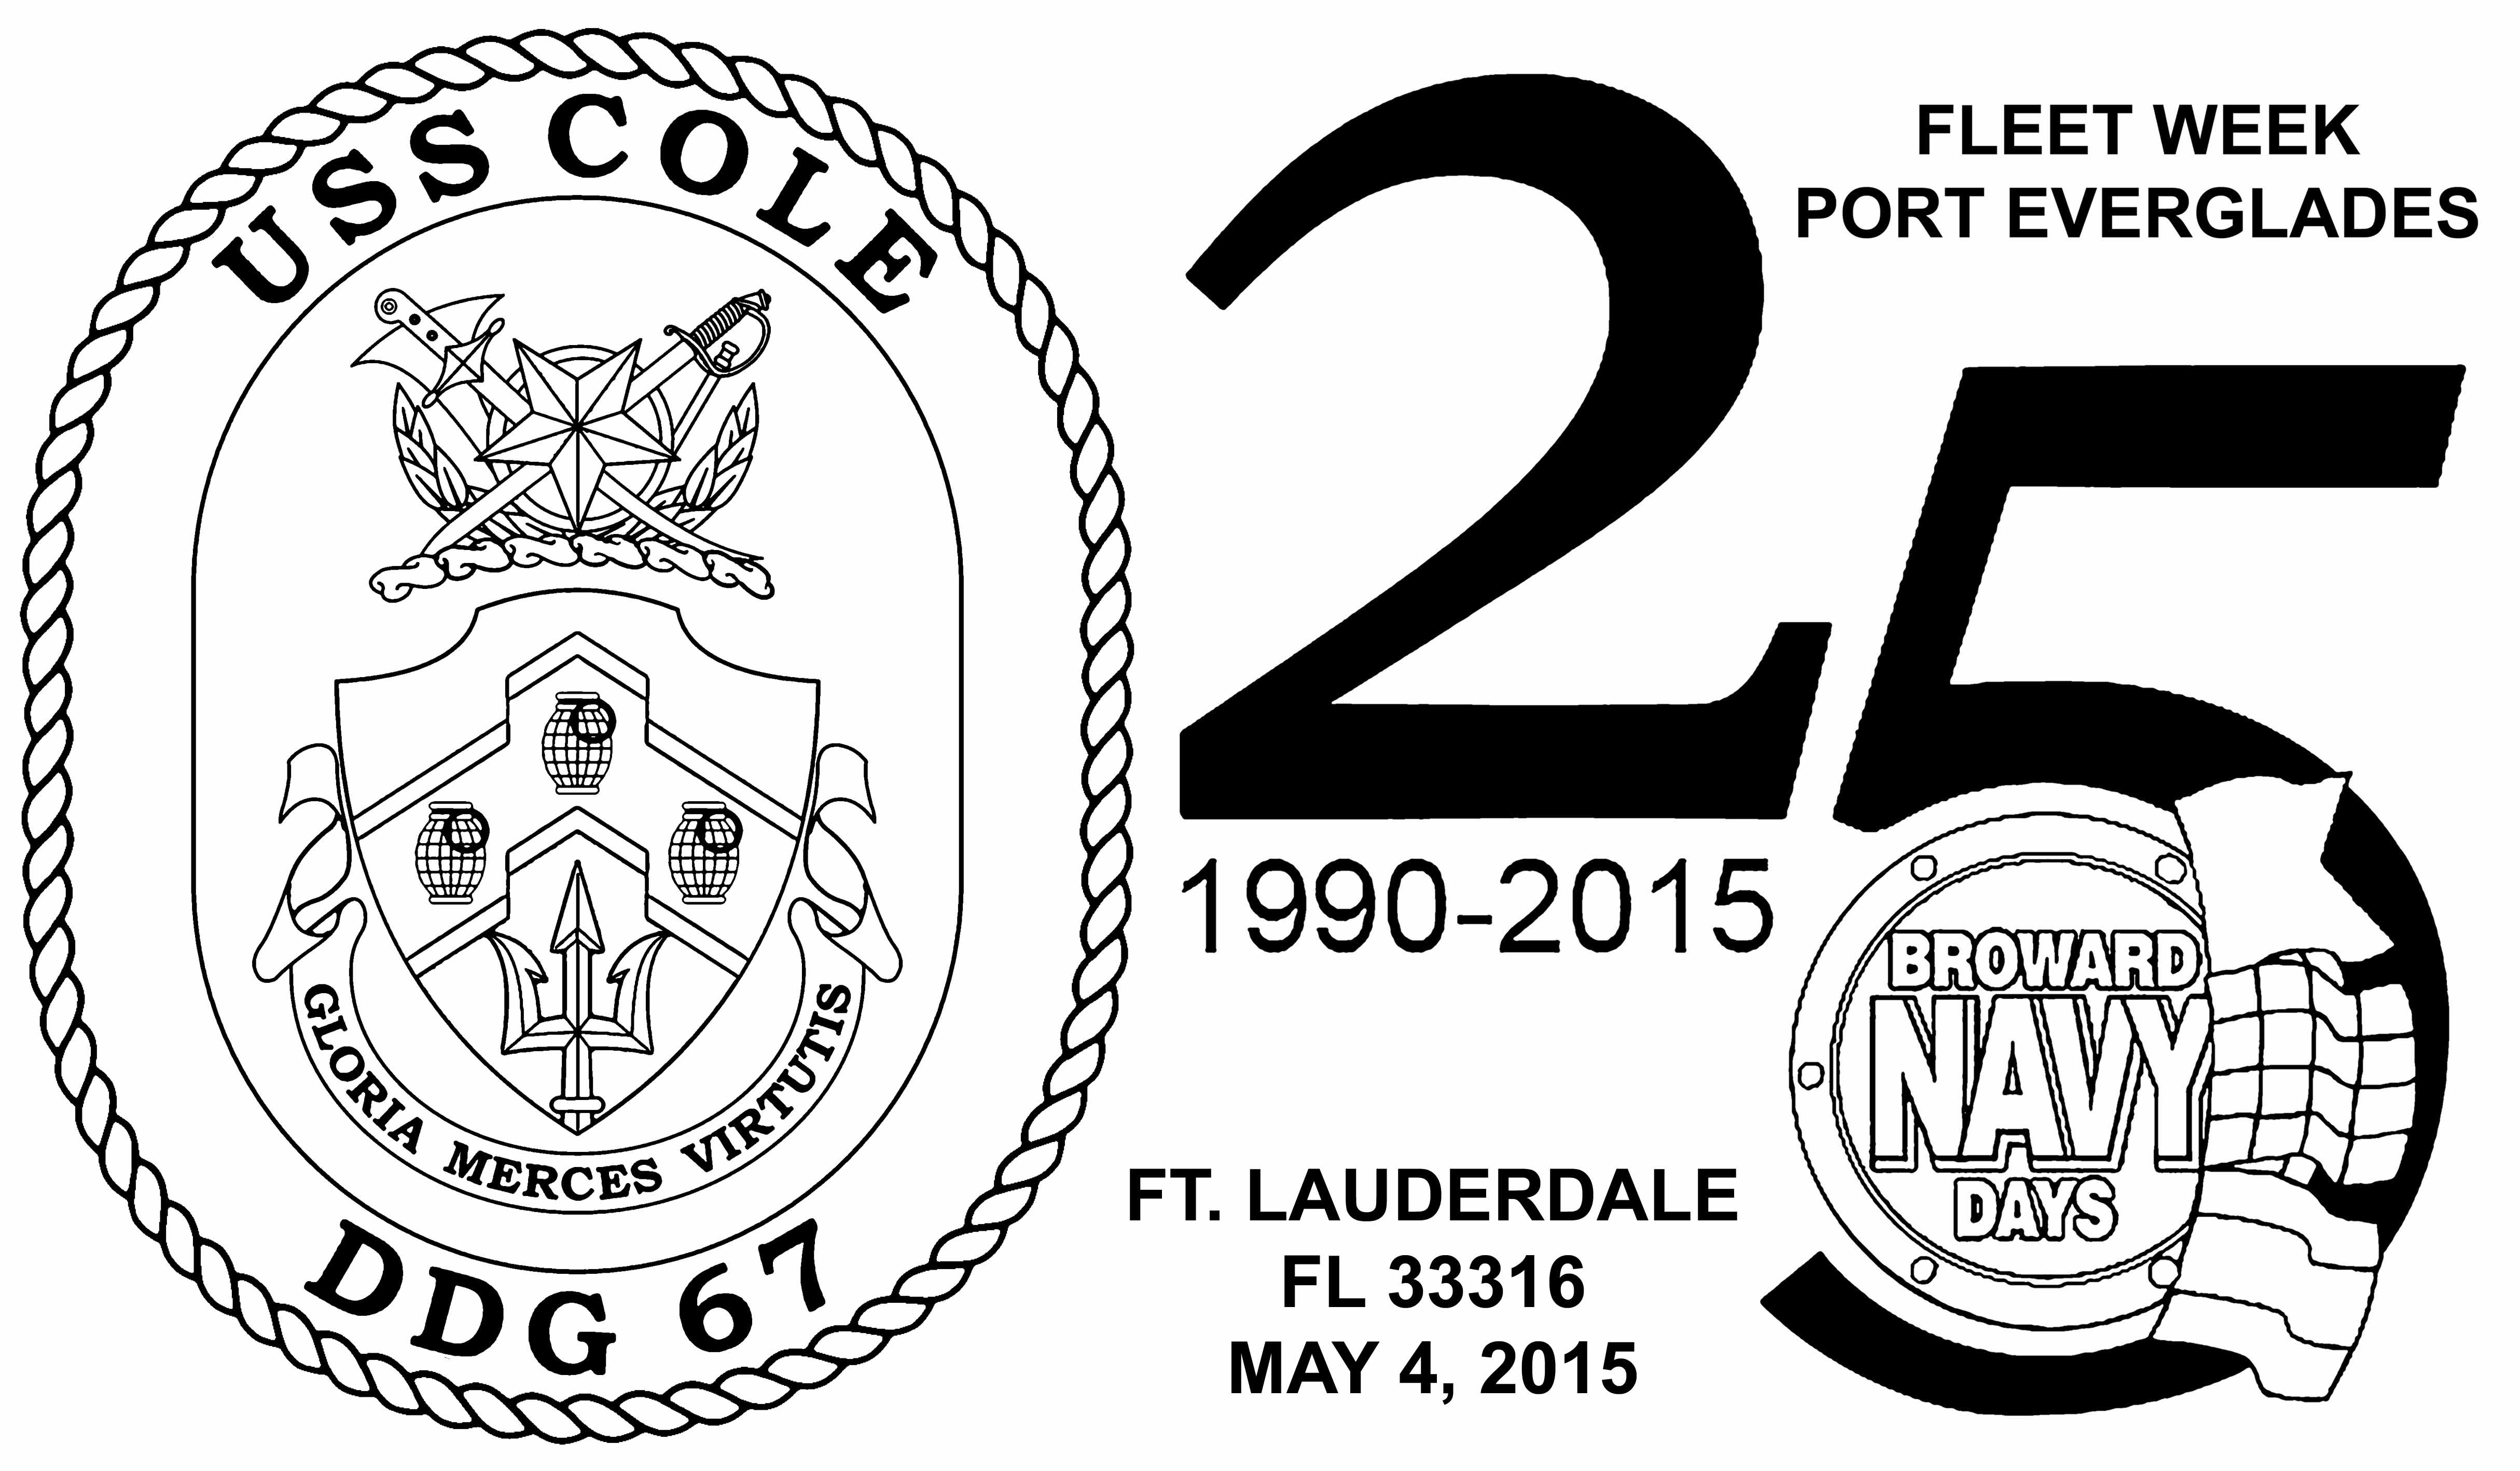 Sonderpoststempel Fleet Week Port Everglades 2015 Design: Wolfgang Hechler